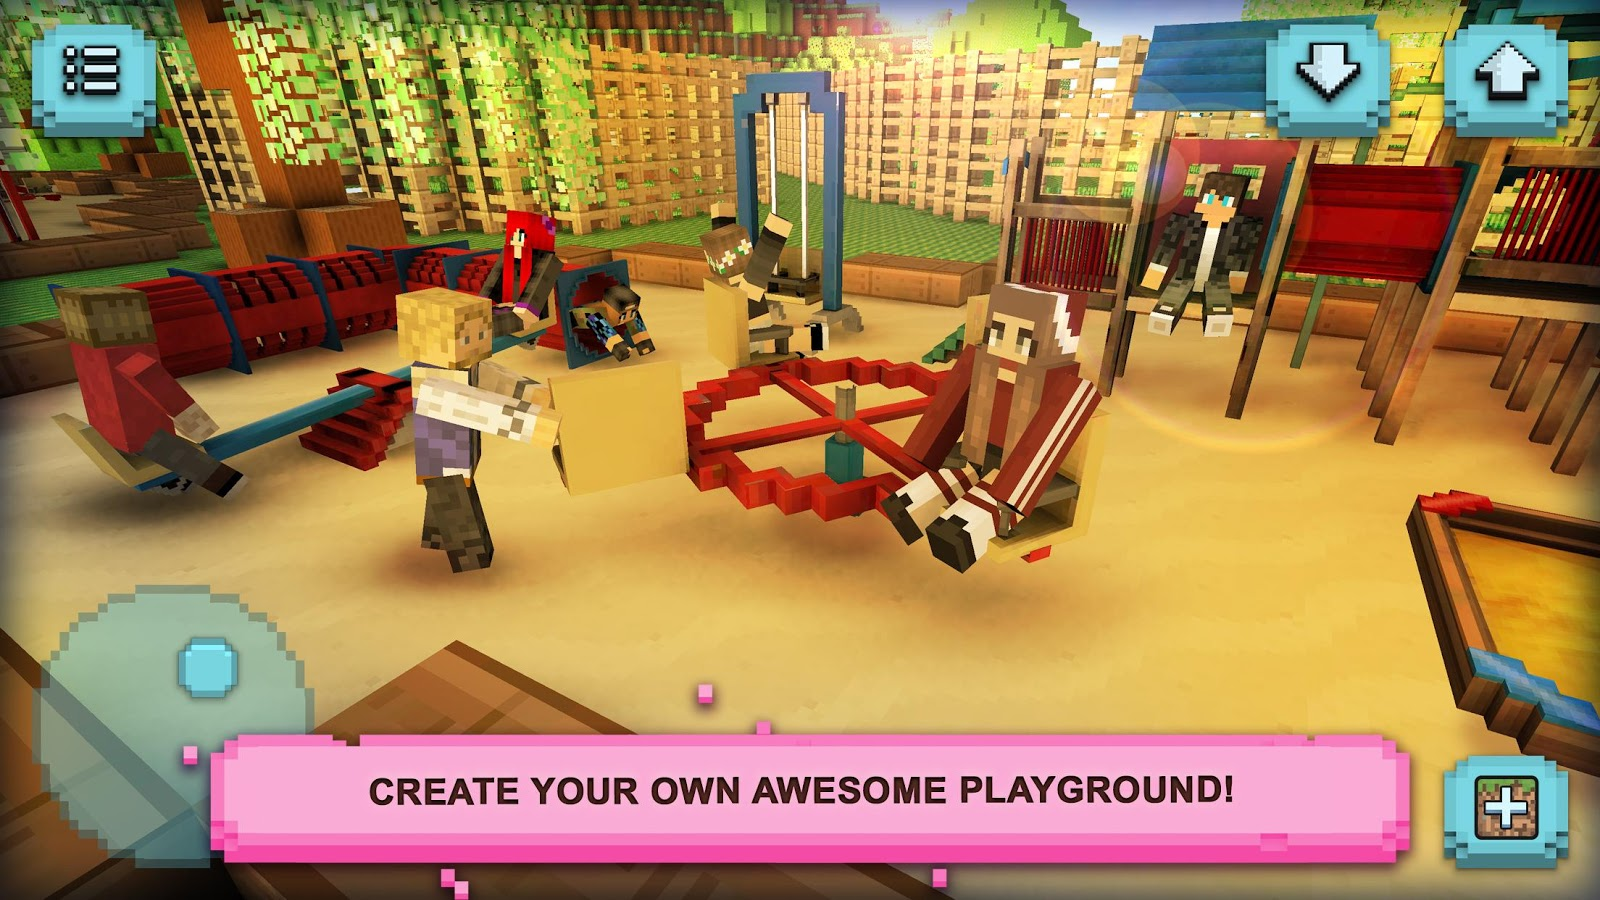 Playground craft build play android apps on google play for Good craft 2 play store